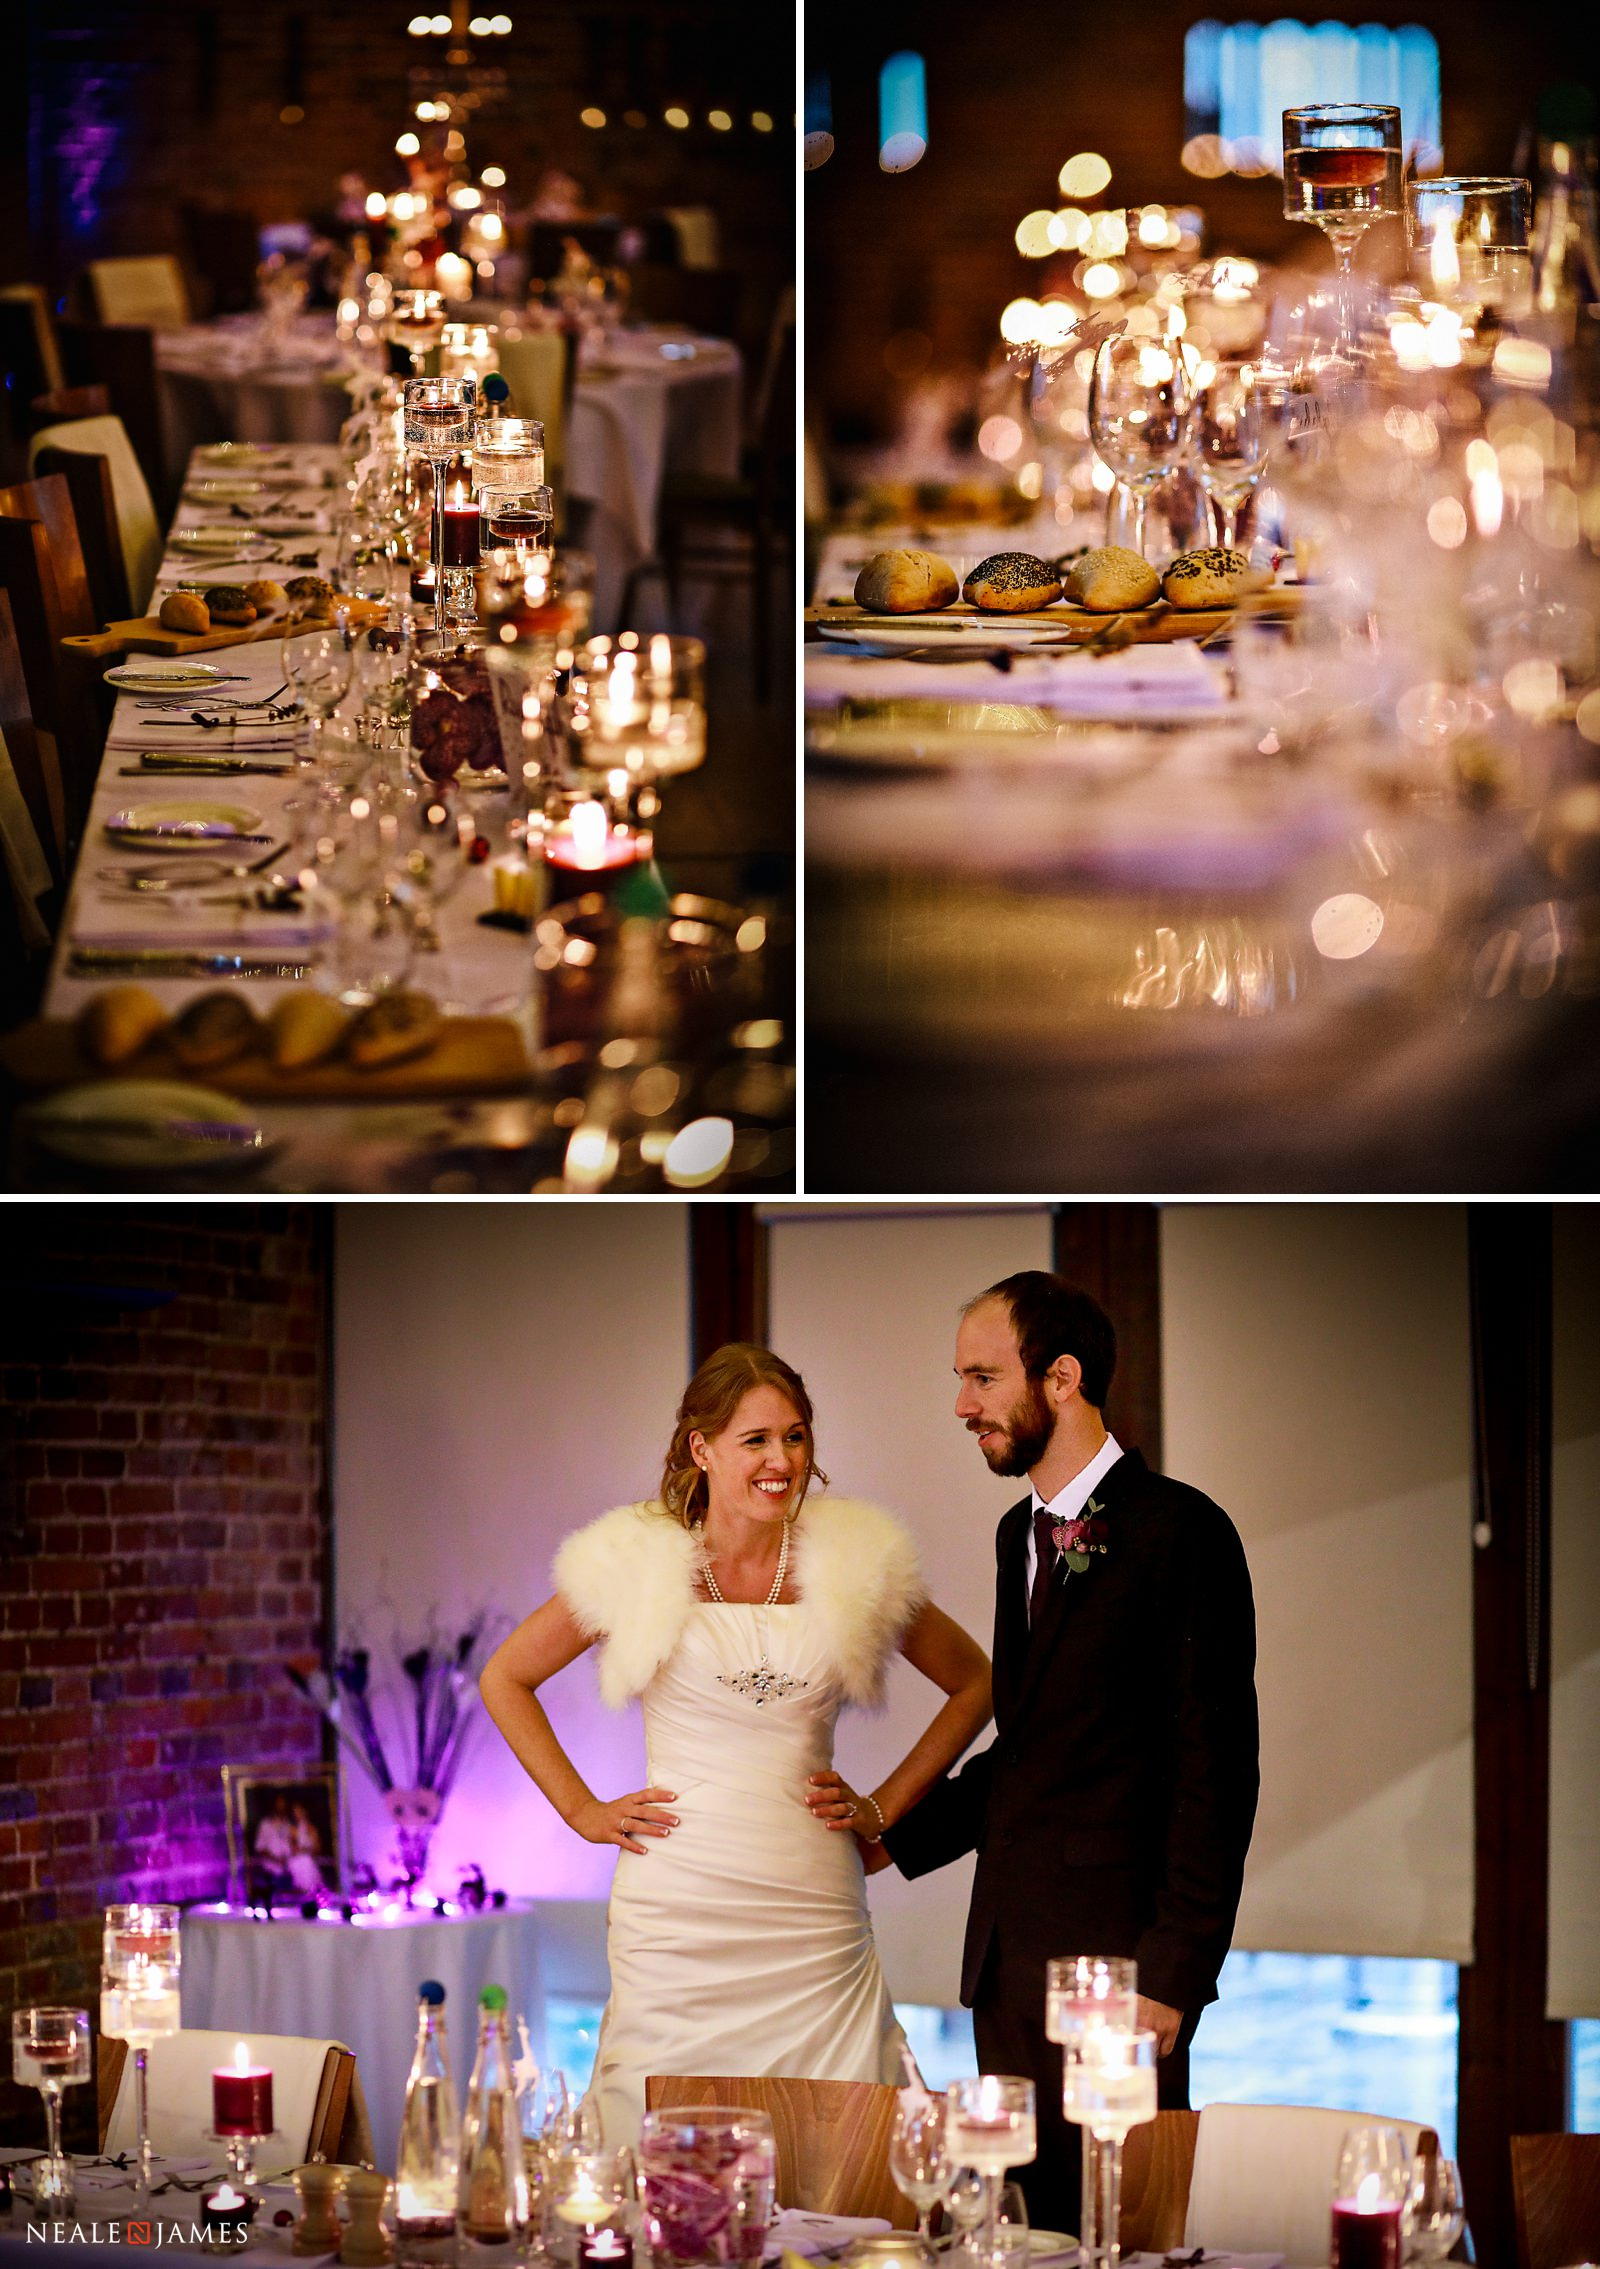 Festive place settings at this winter wedding at Wasing Park